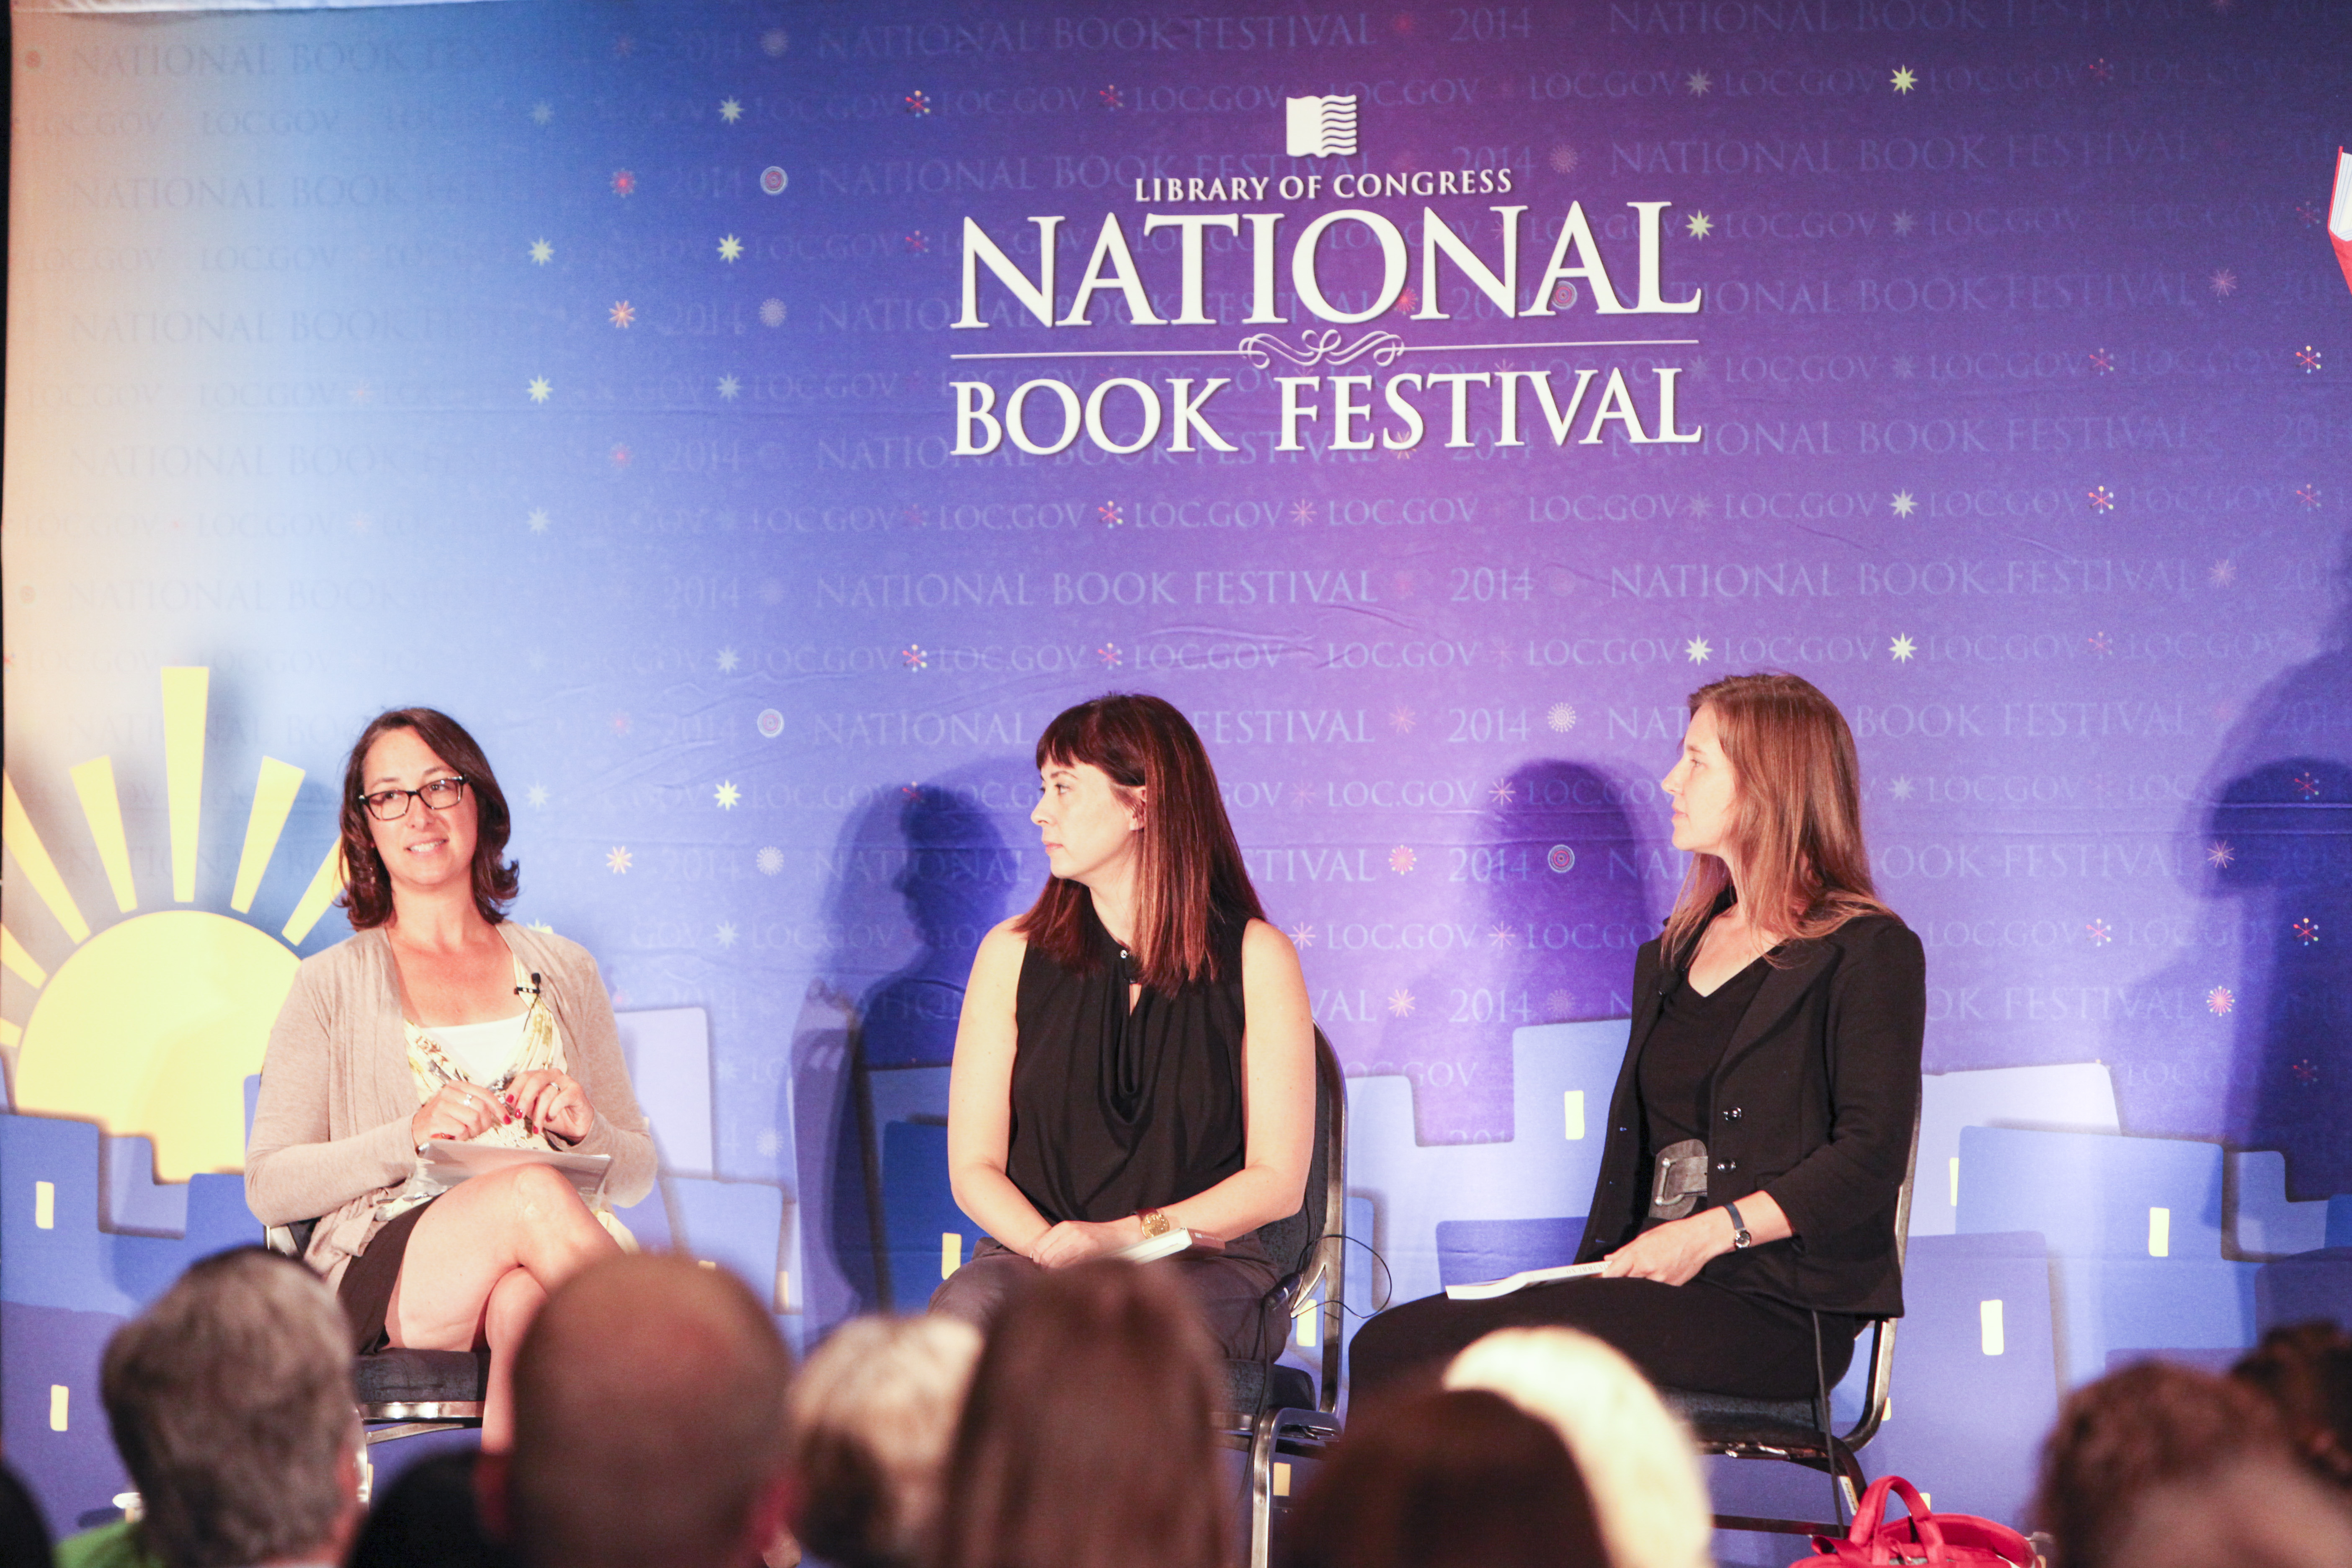 NEA Literature Director on stage with NEA Creative Writing Fellows Paisley Redkal and Eula Biss.